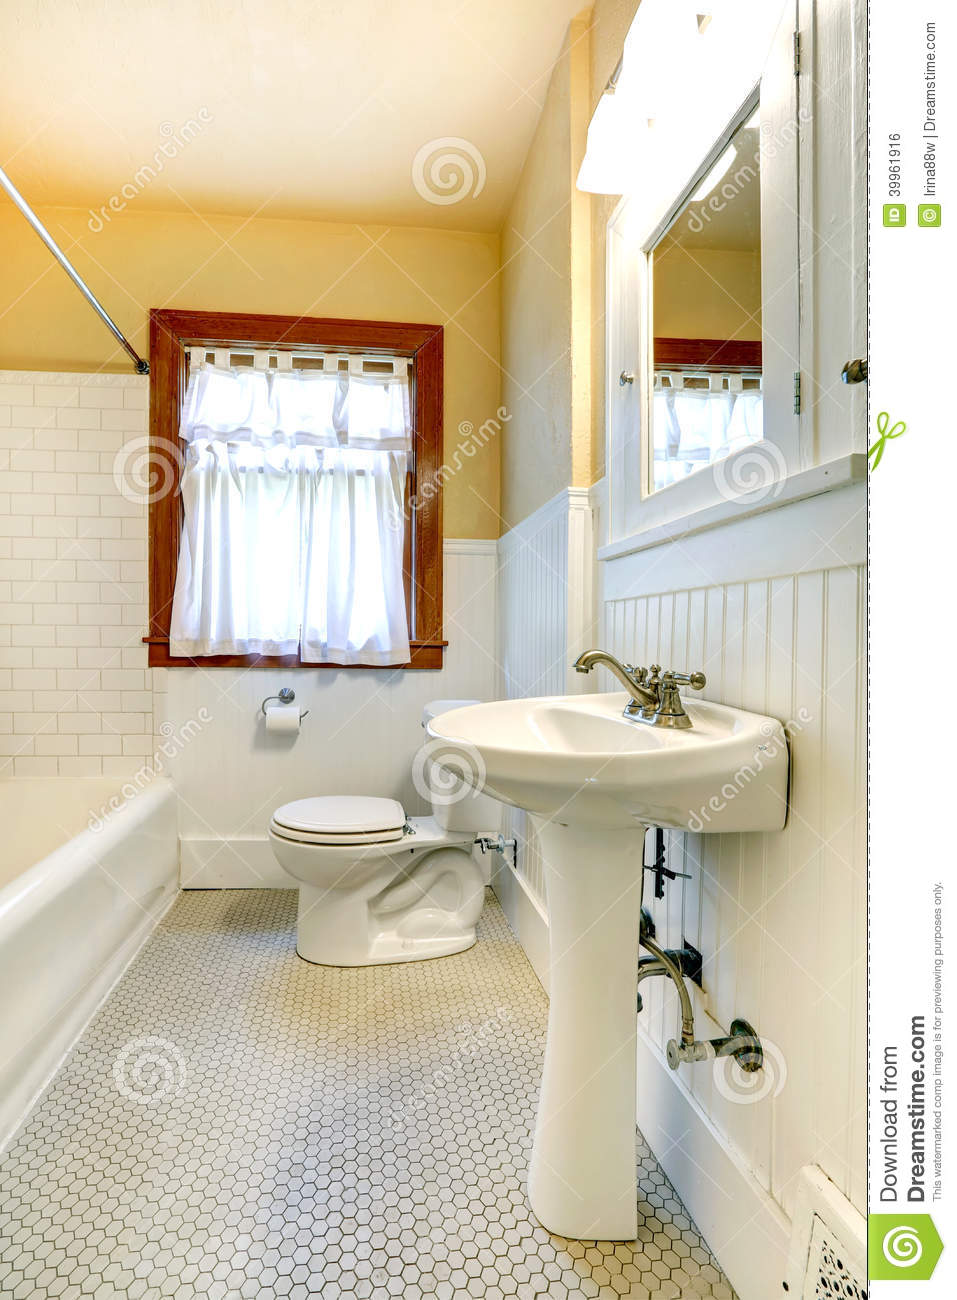 Yellow And White Bathroom With Window Stock Photo Image 39961916